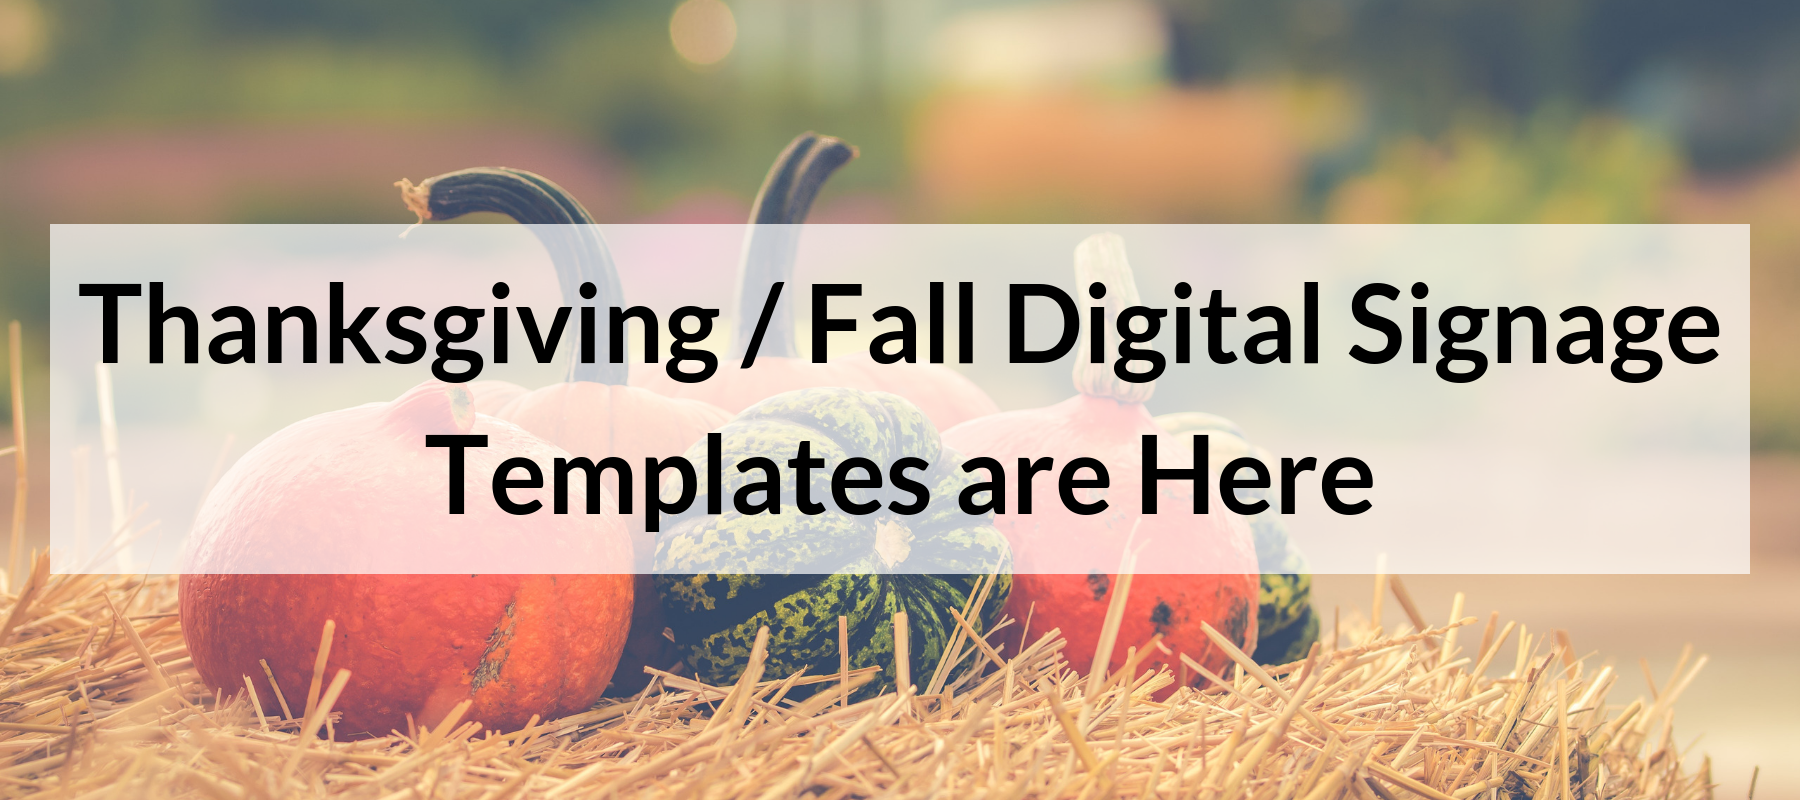 Thanksgiving - Fall Digital Signage Templates are Here